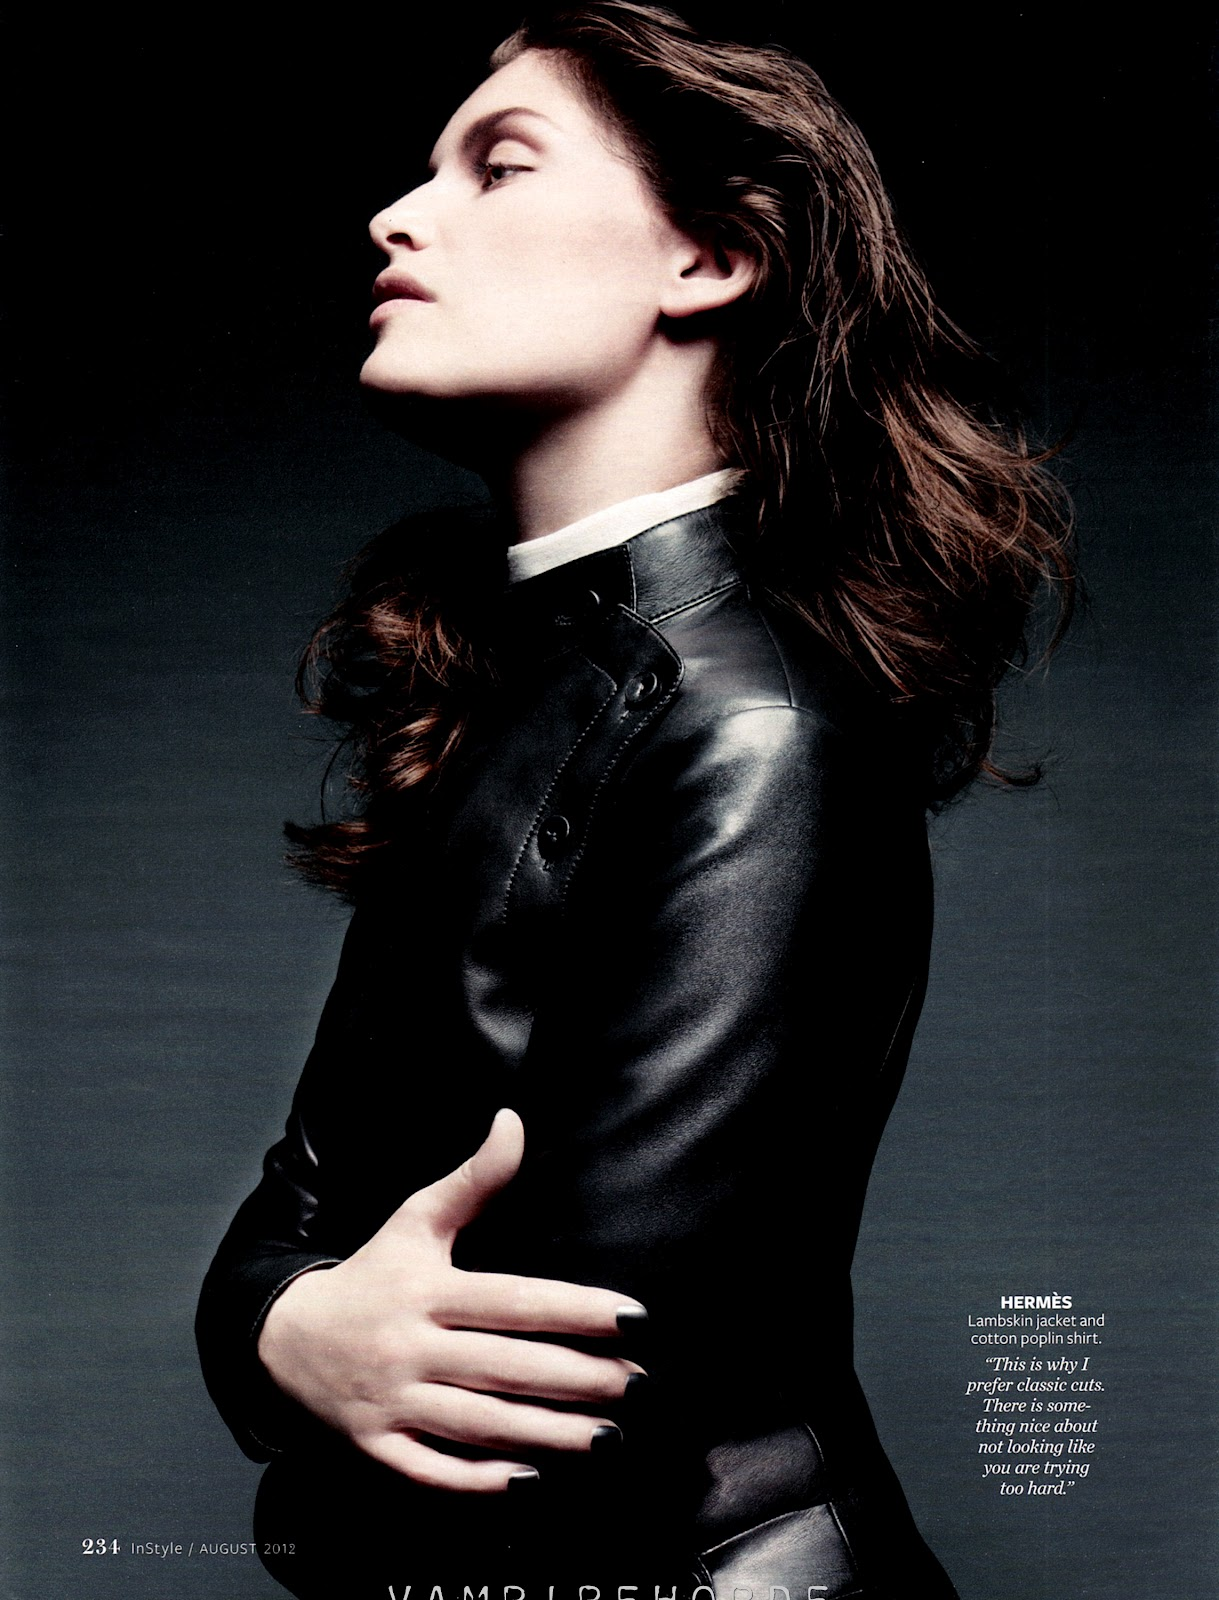 http://1.bp.blogspot.com/-X2cFDiXzO-E/T_2clN7YZGI/AAAAAAABxho/fTViGGaCbYE/s1600/fashion_scans_remastered-laetitia_casta-instyle_usa-august_2012-scanned_by_vampirehorde-hq-4.jpg